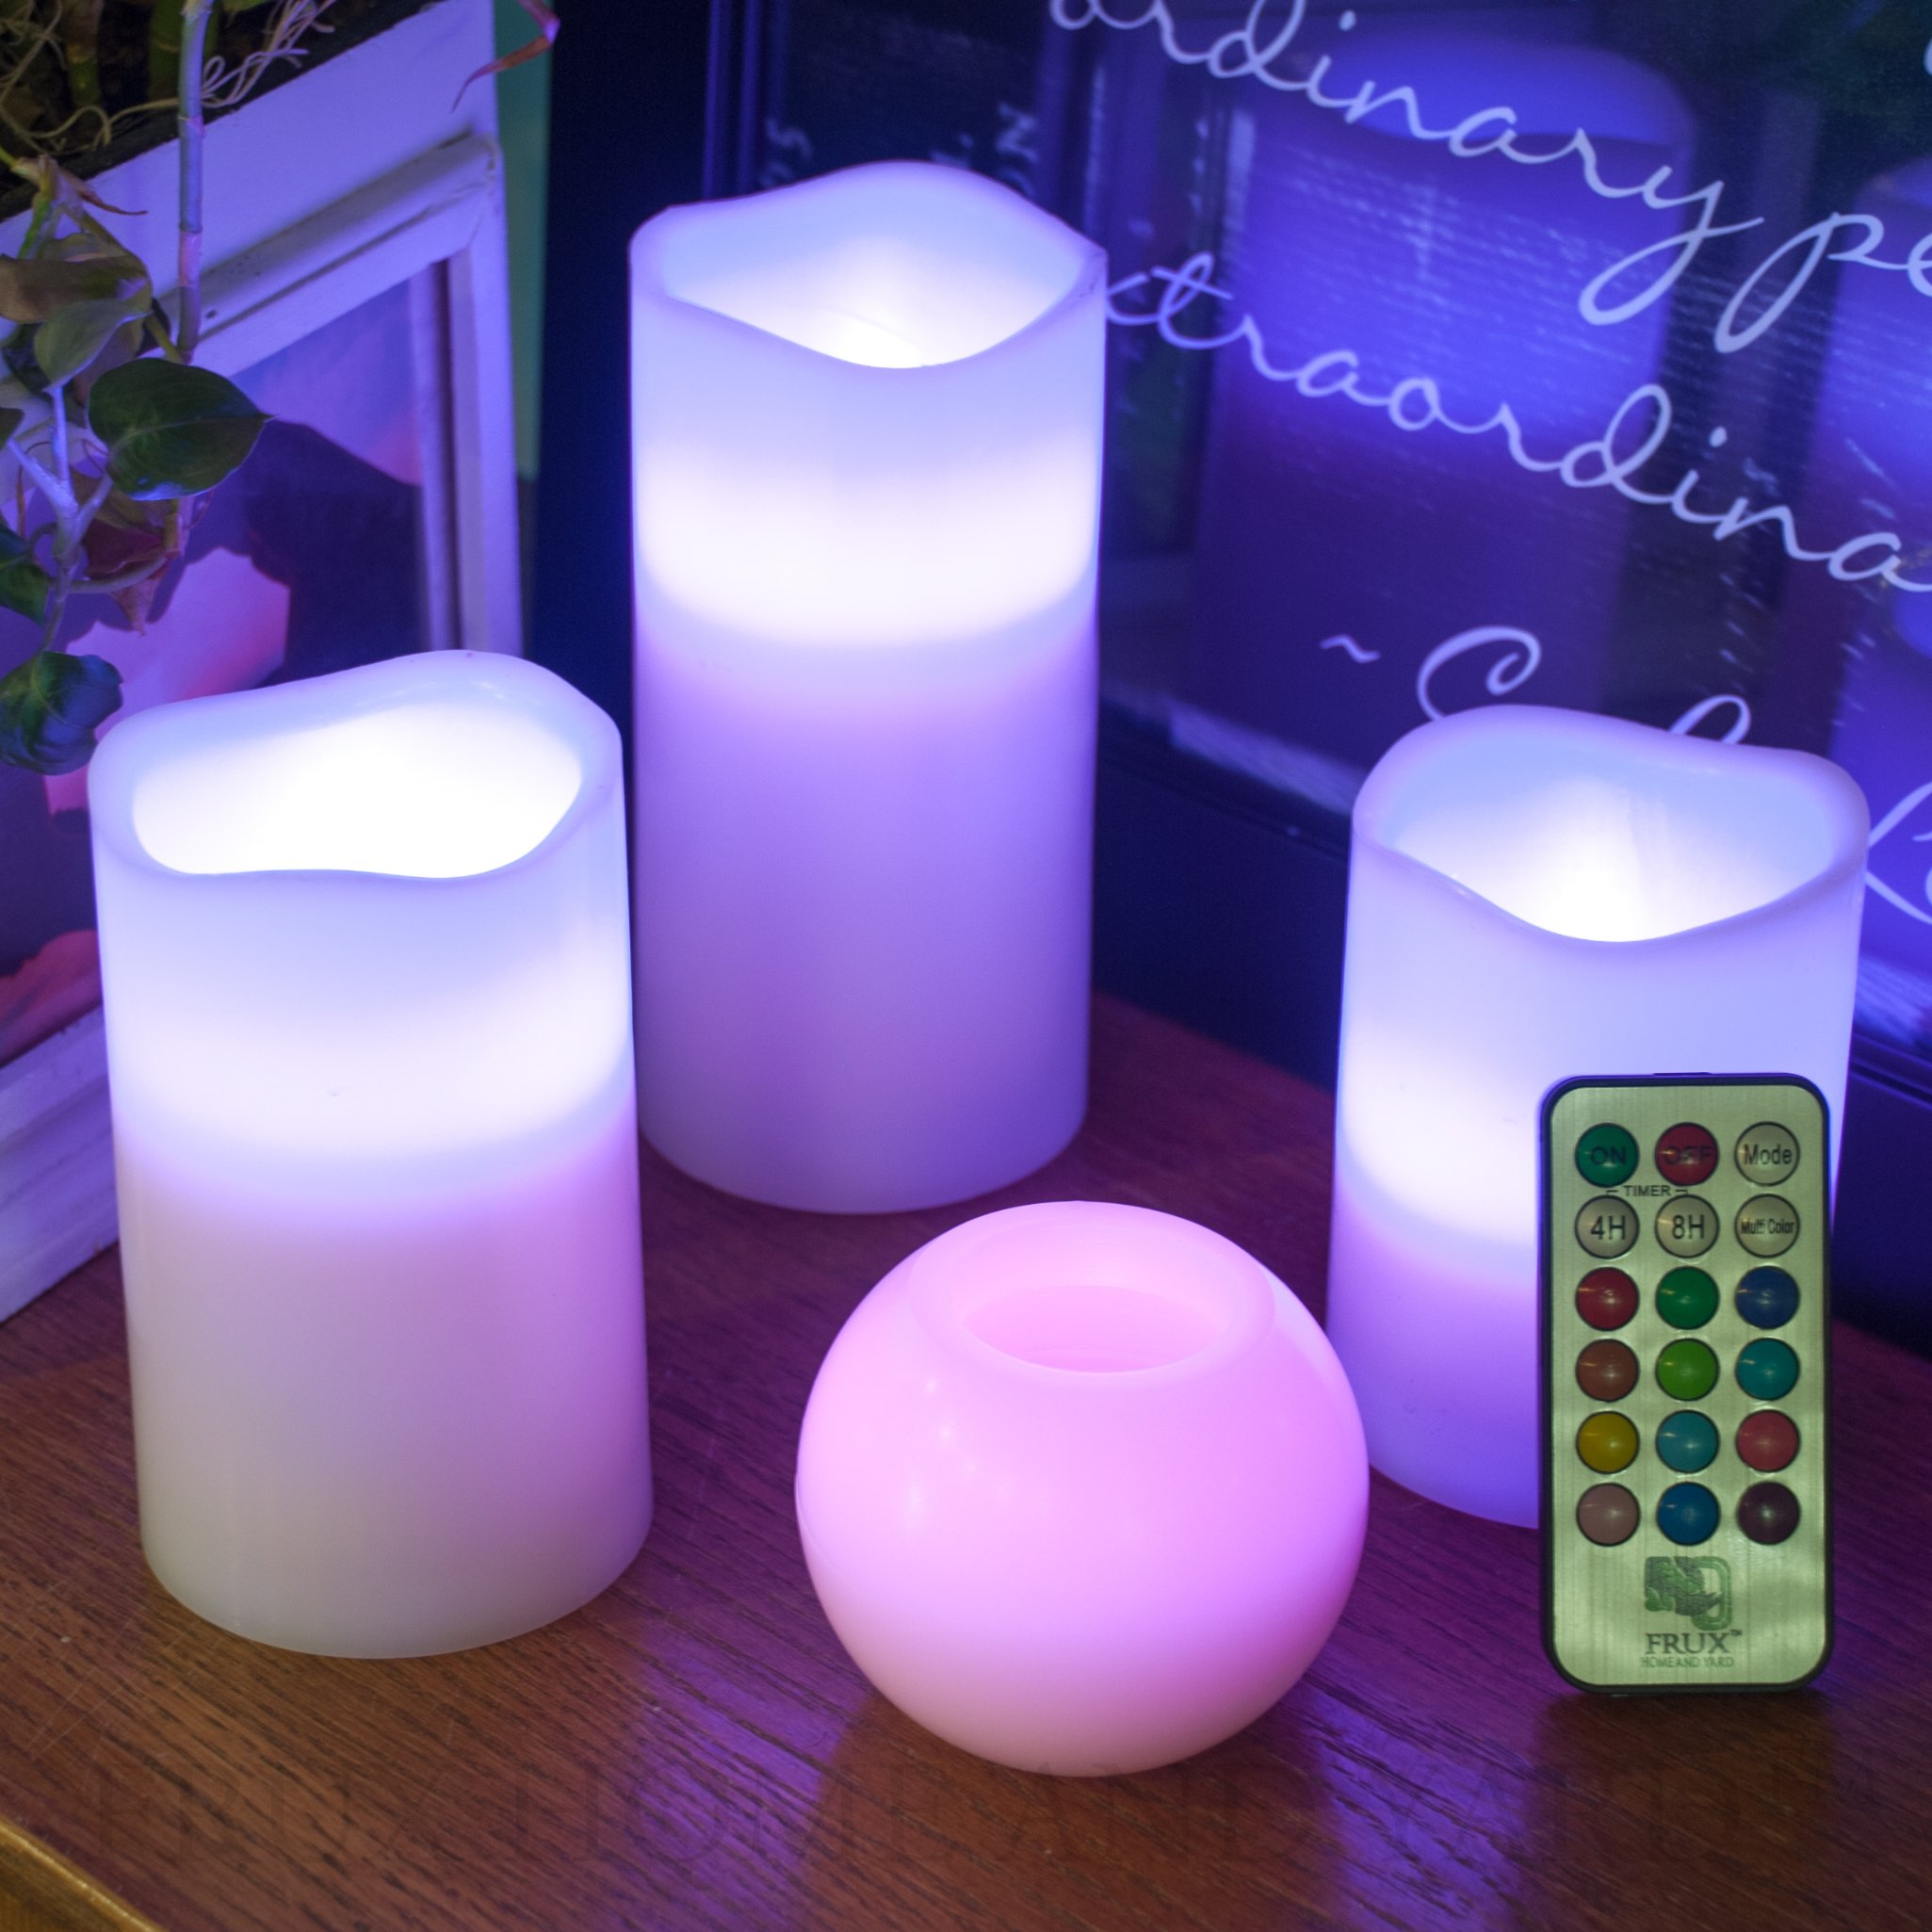 BEST FLAMELESS CANDLES WITH 12 COLOR, TIMER REMOTE CONTROL, Unscented Flickering Battery Operated Electric Candle for Home Decor, Weddings, Parties & Gifts, Set of 4' 5' 6' Pillars & BONUS Ball Candle by Frux Home and Yard (Image #8)